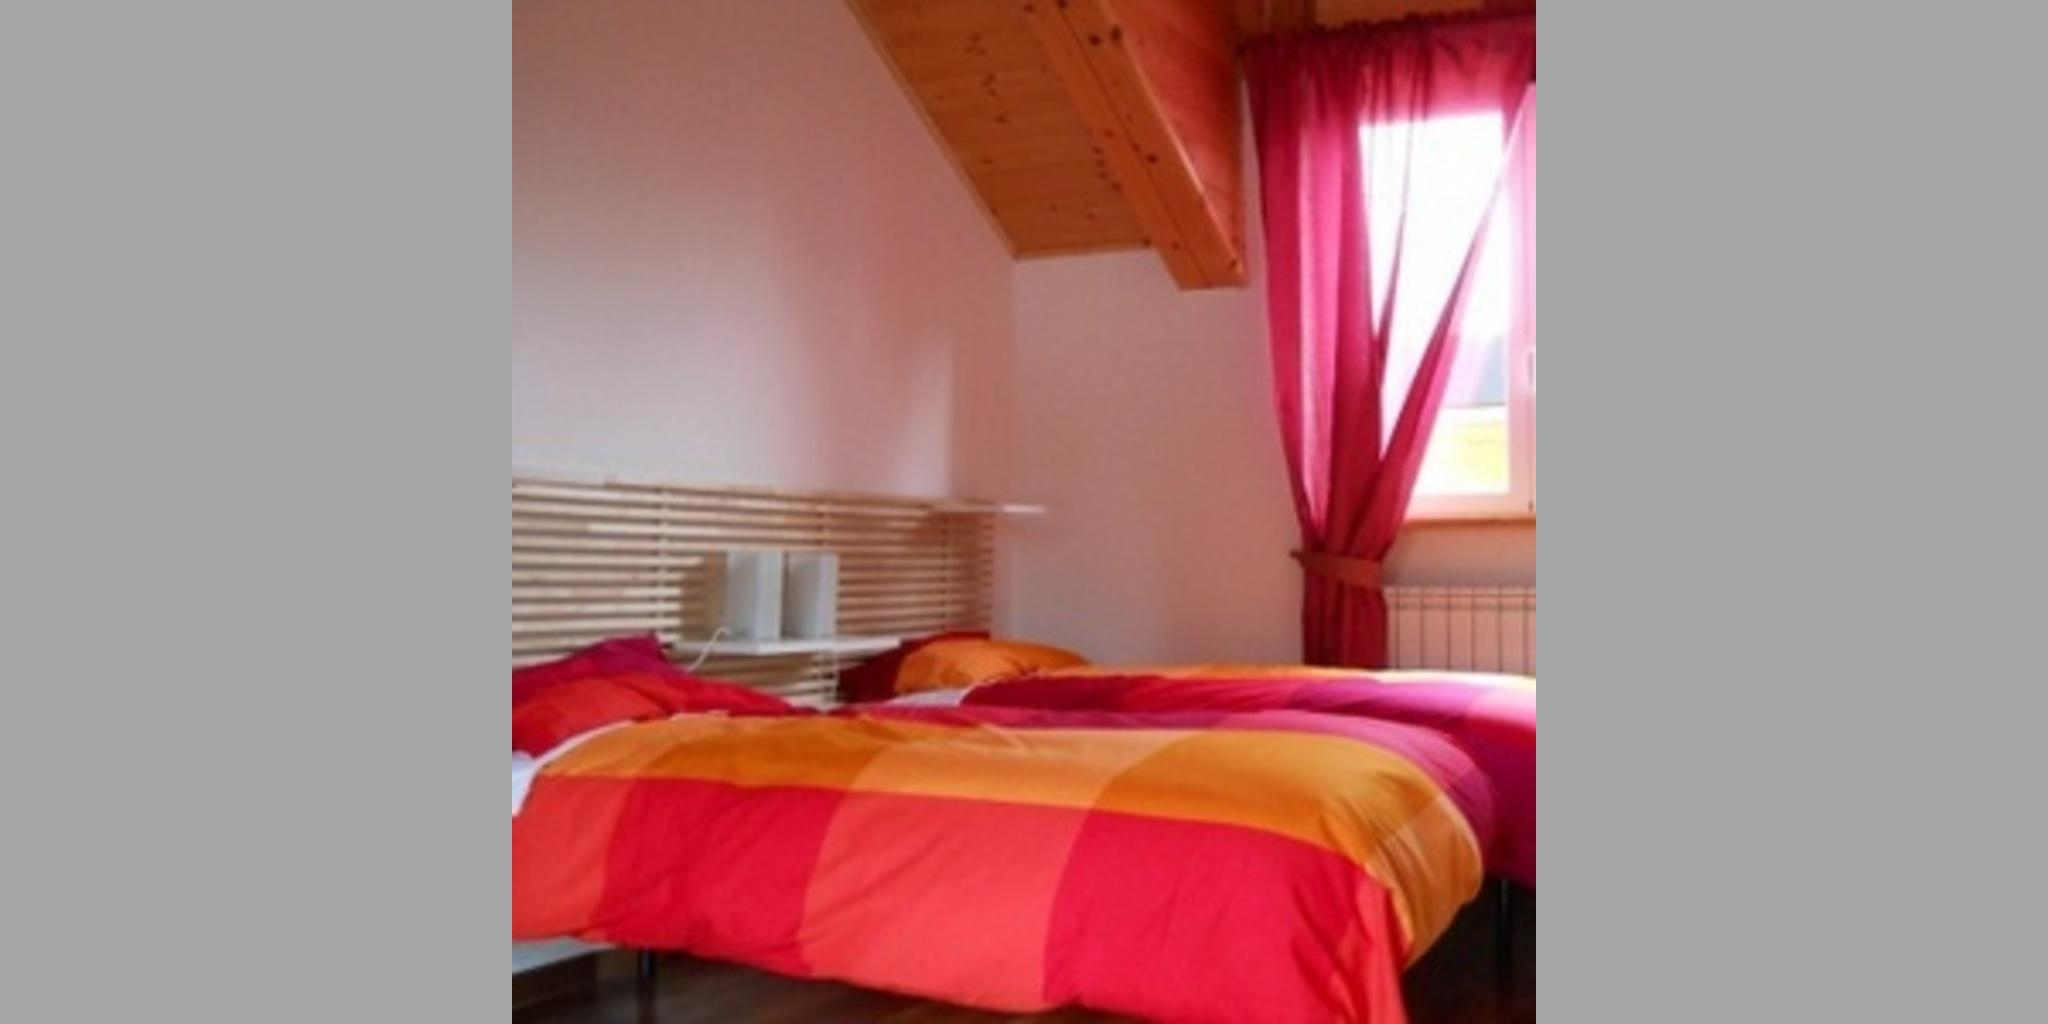 Bed & Breakfast Rho - Fiera Di Rho